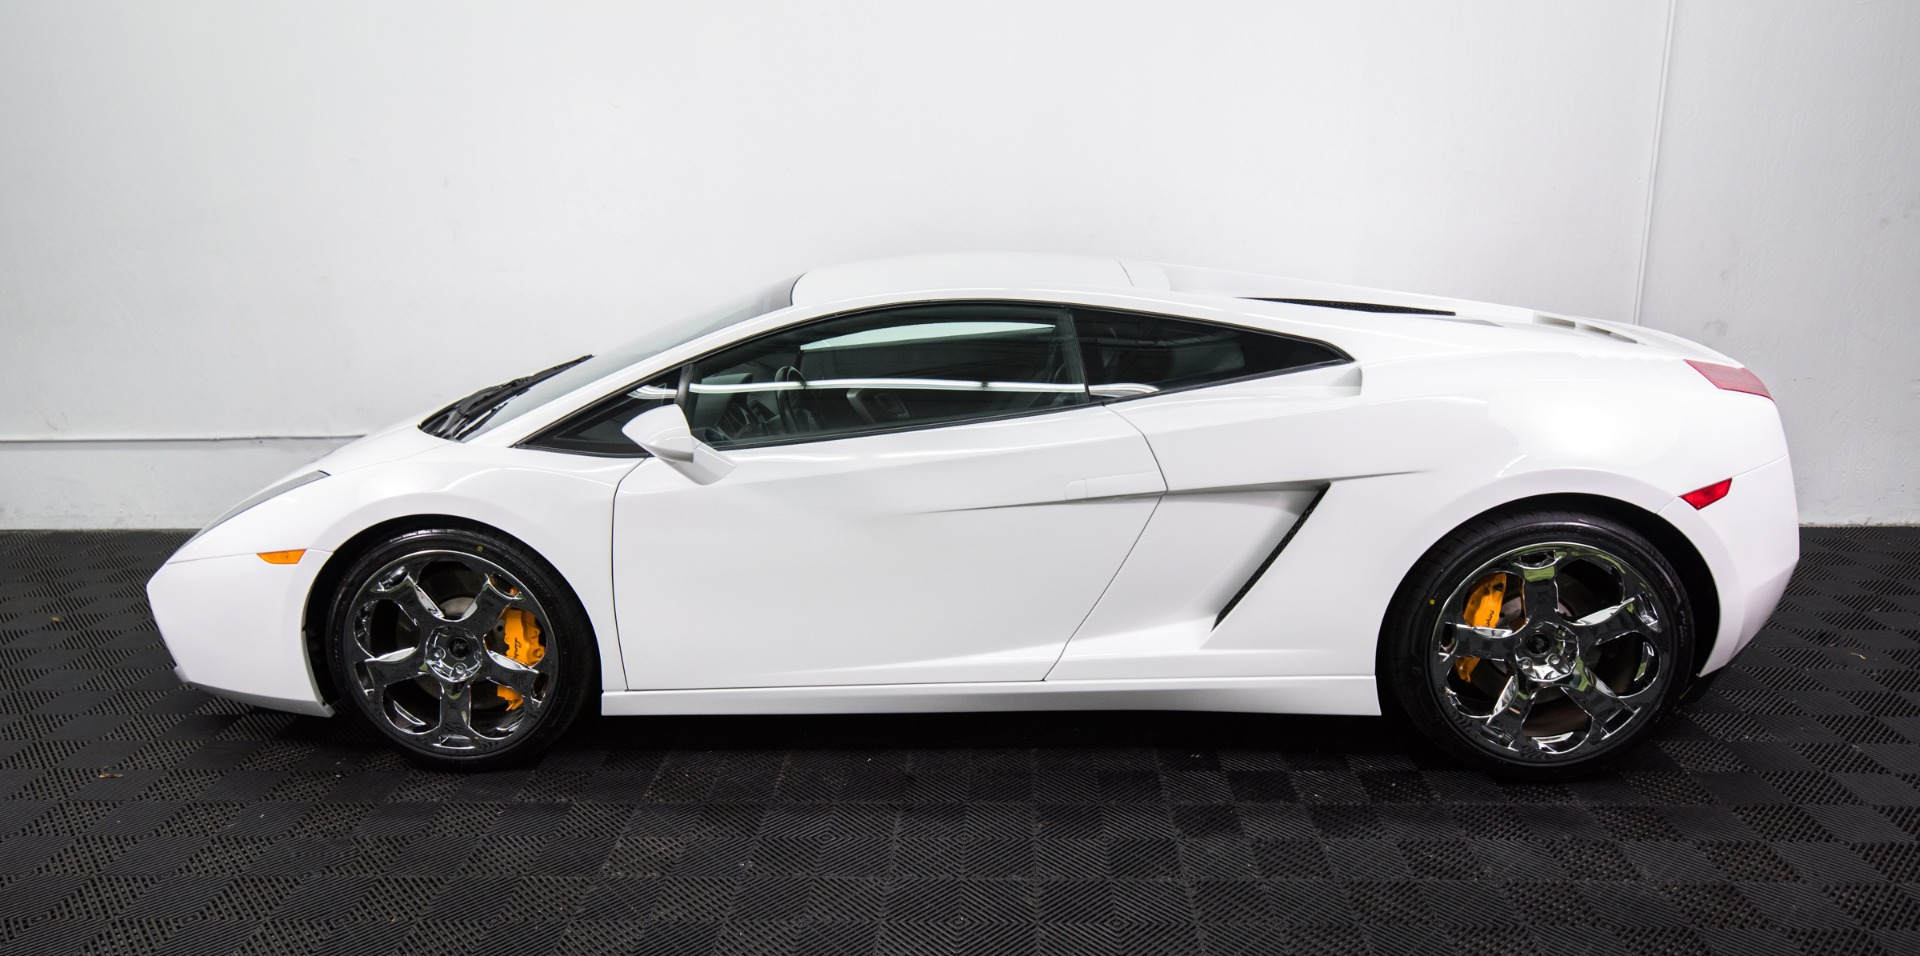 Used 2004 Lamborghini Gallardo Used 2004 Lamborghini Gallardo for sale Sold at Response Motors in Mountain View CA 12